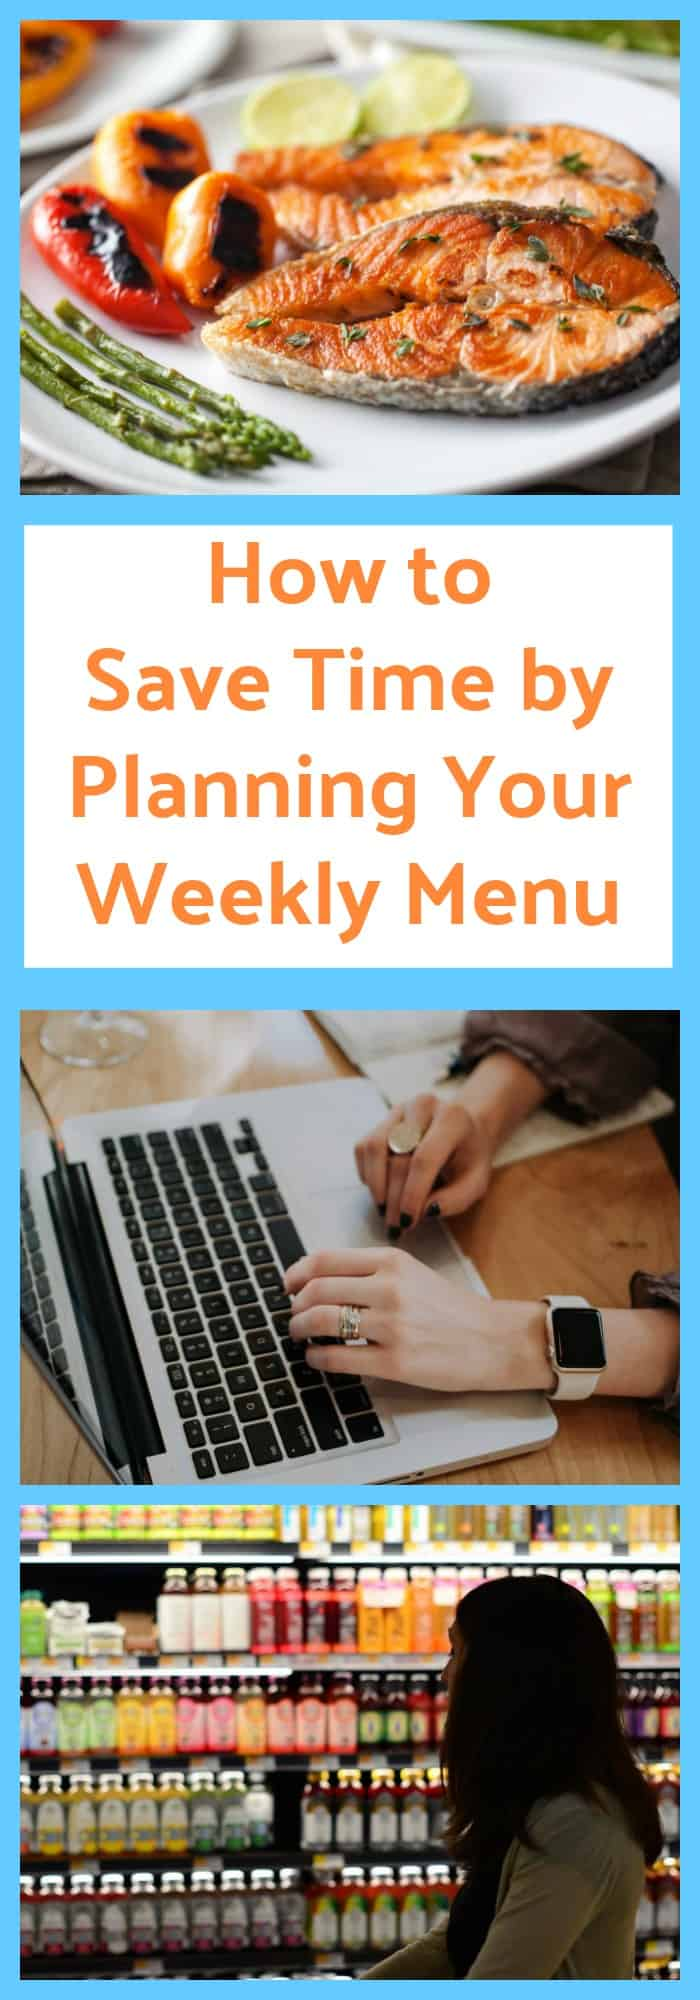 How to Save Time by Planning Your Weekly Menu